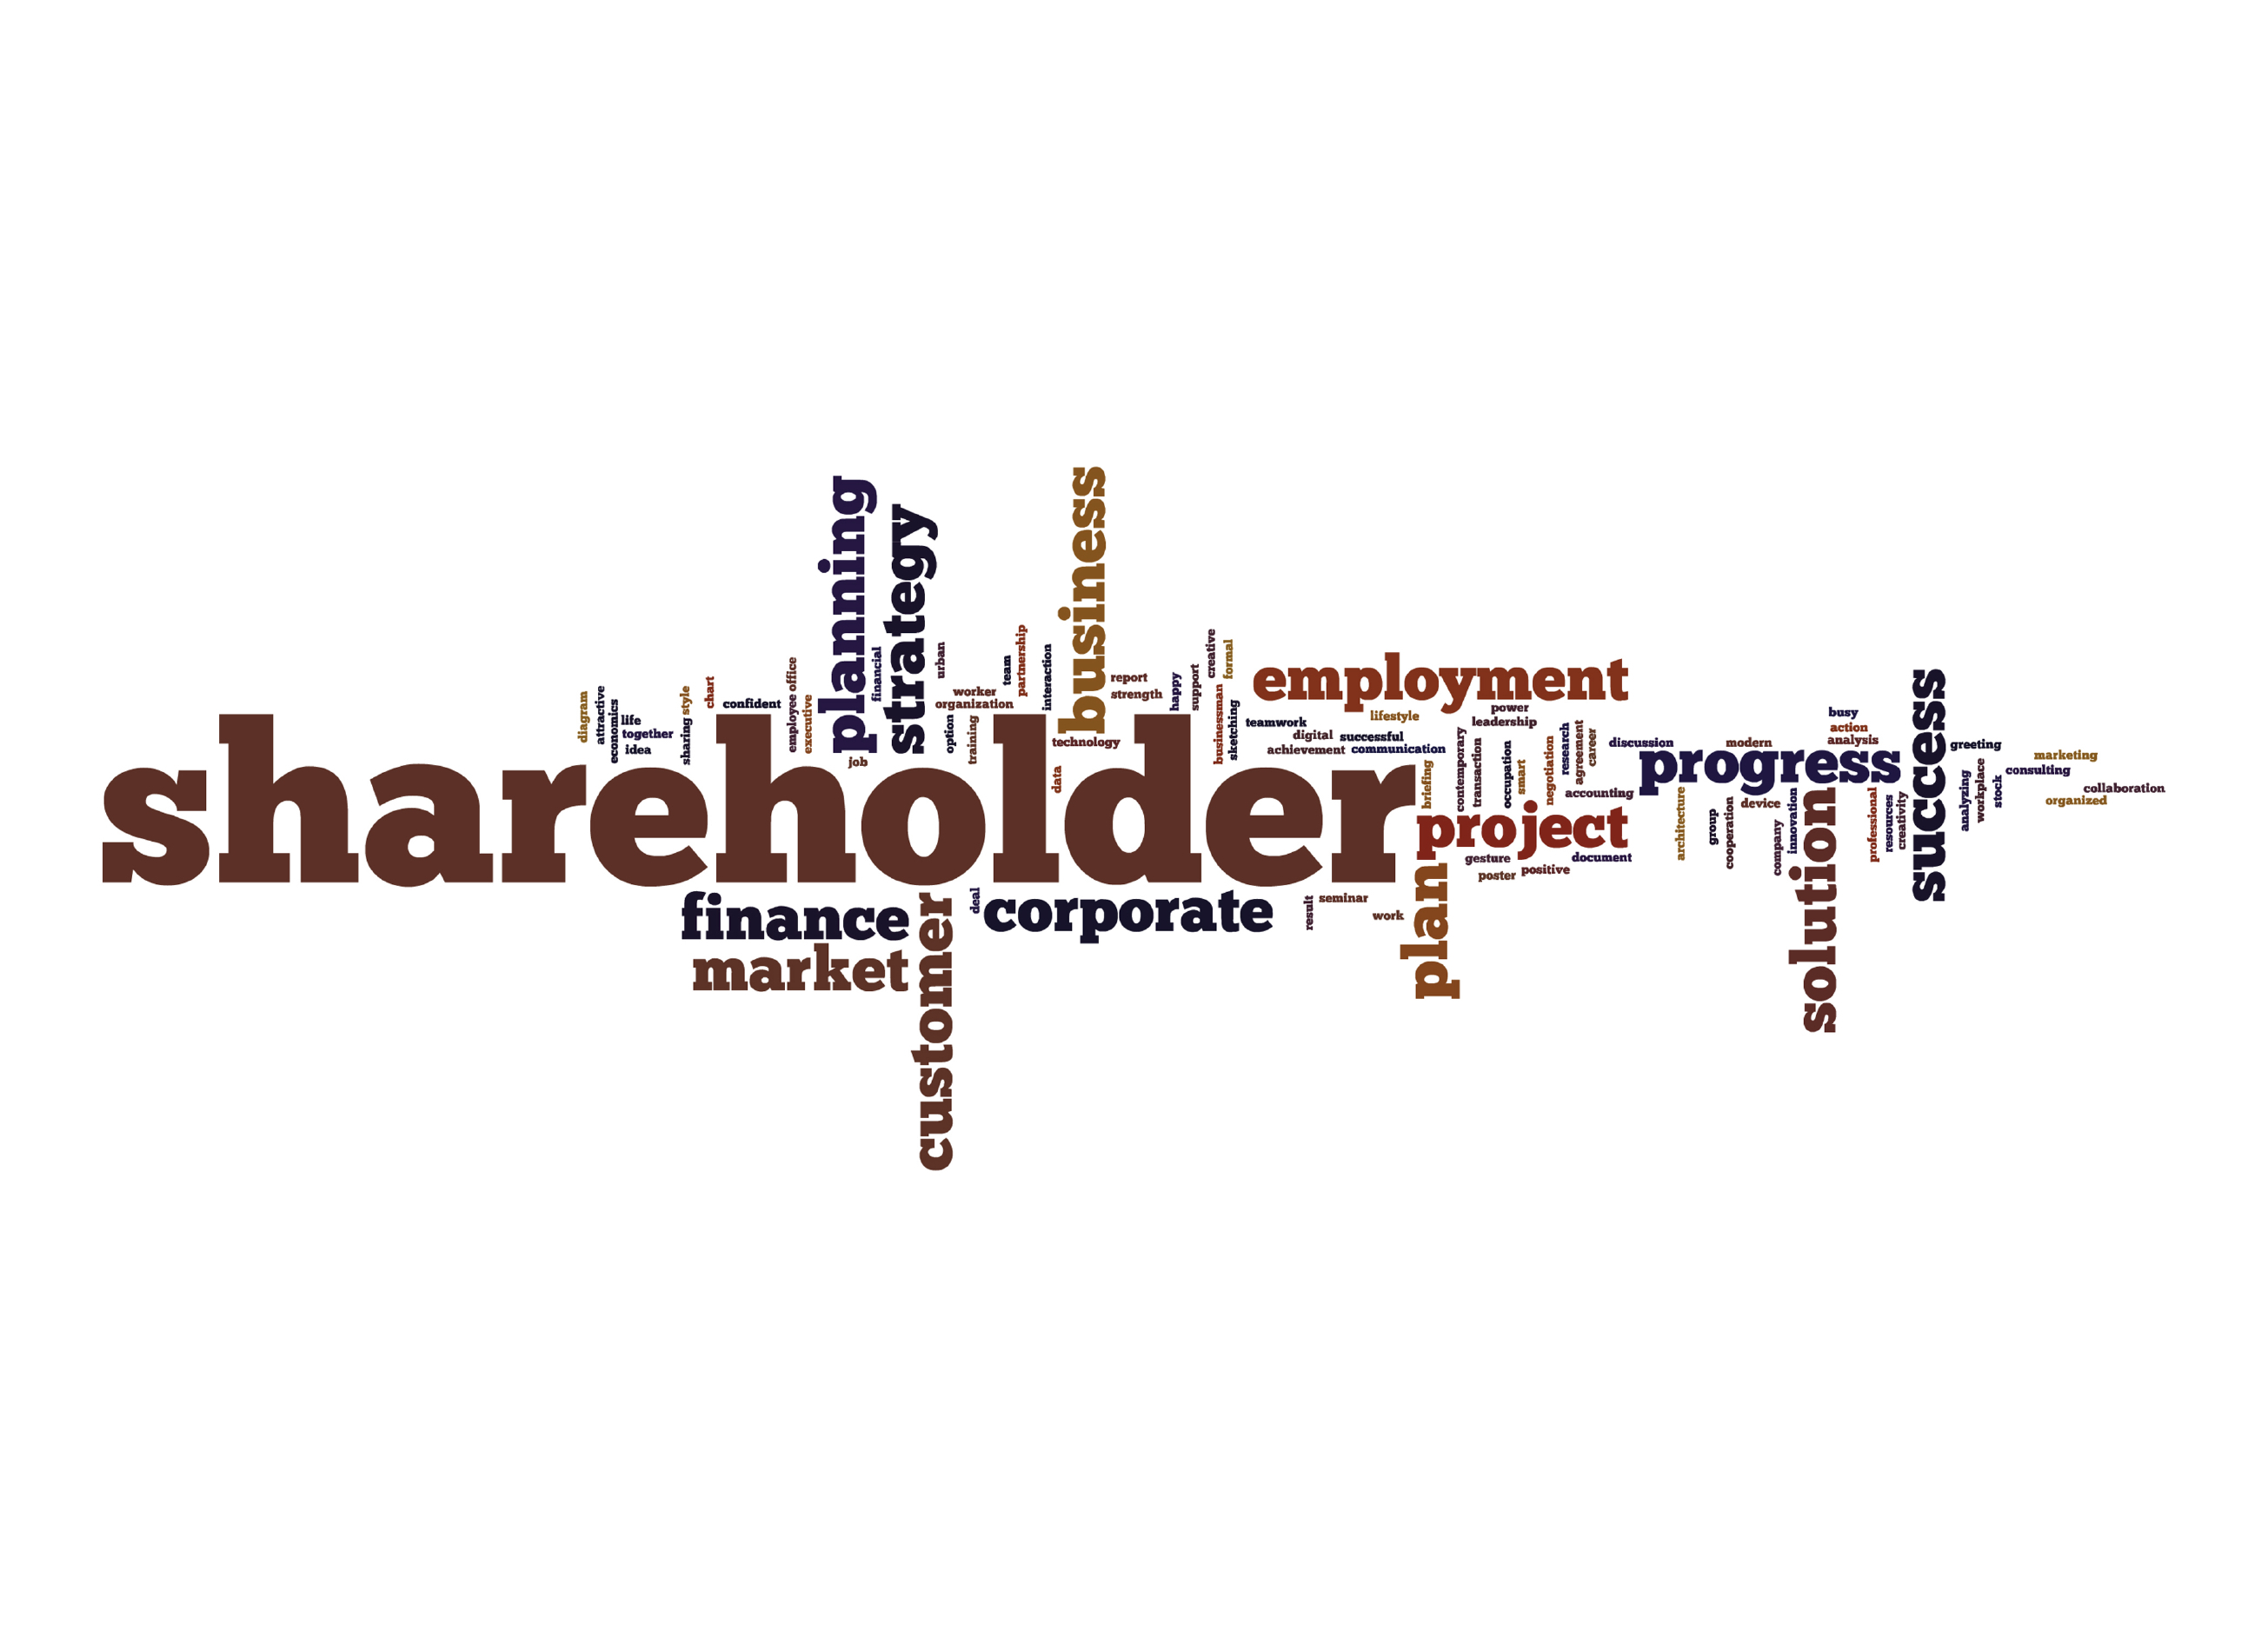 The Mergers And Acquisitions Incentive Scheme For Singapore  panies likewise Job Application Form Template further Camrsharma in addition Know Native Deer Foods as well Understanding Management Liability Insurance. on corporate liability